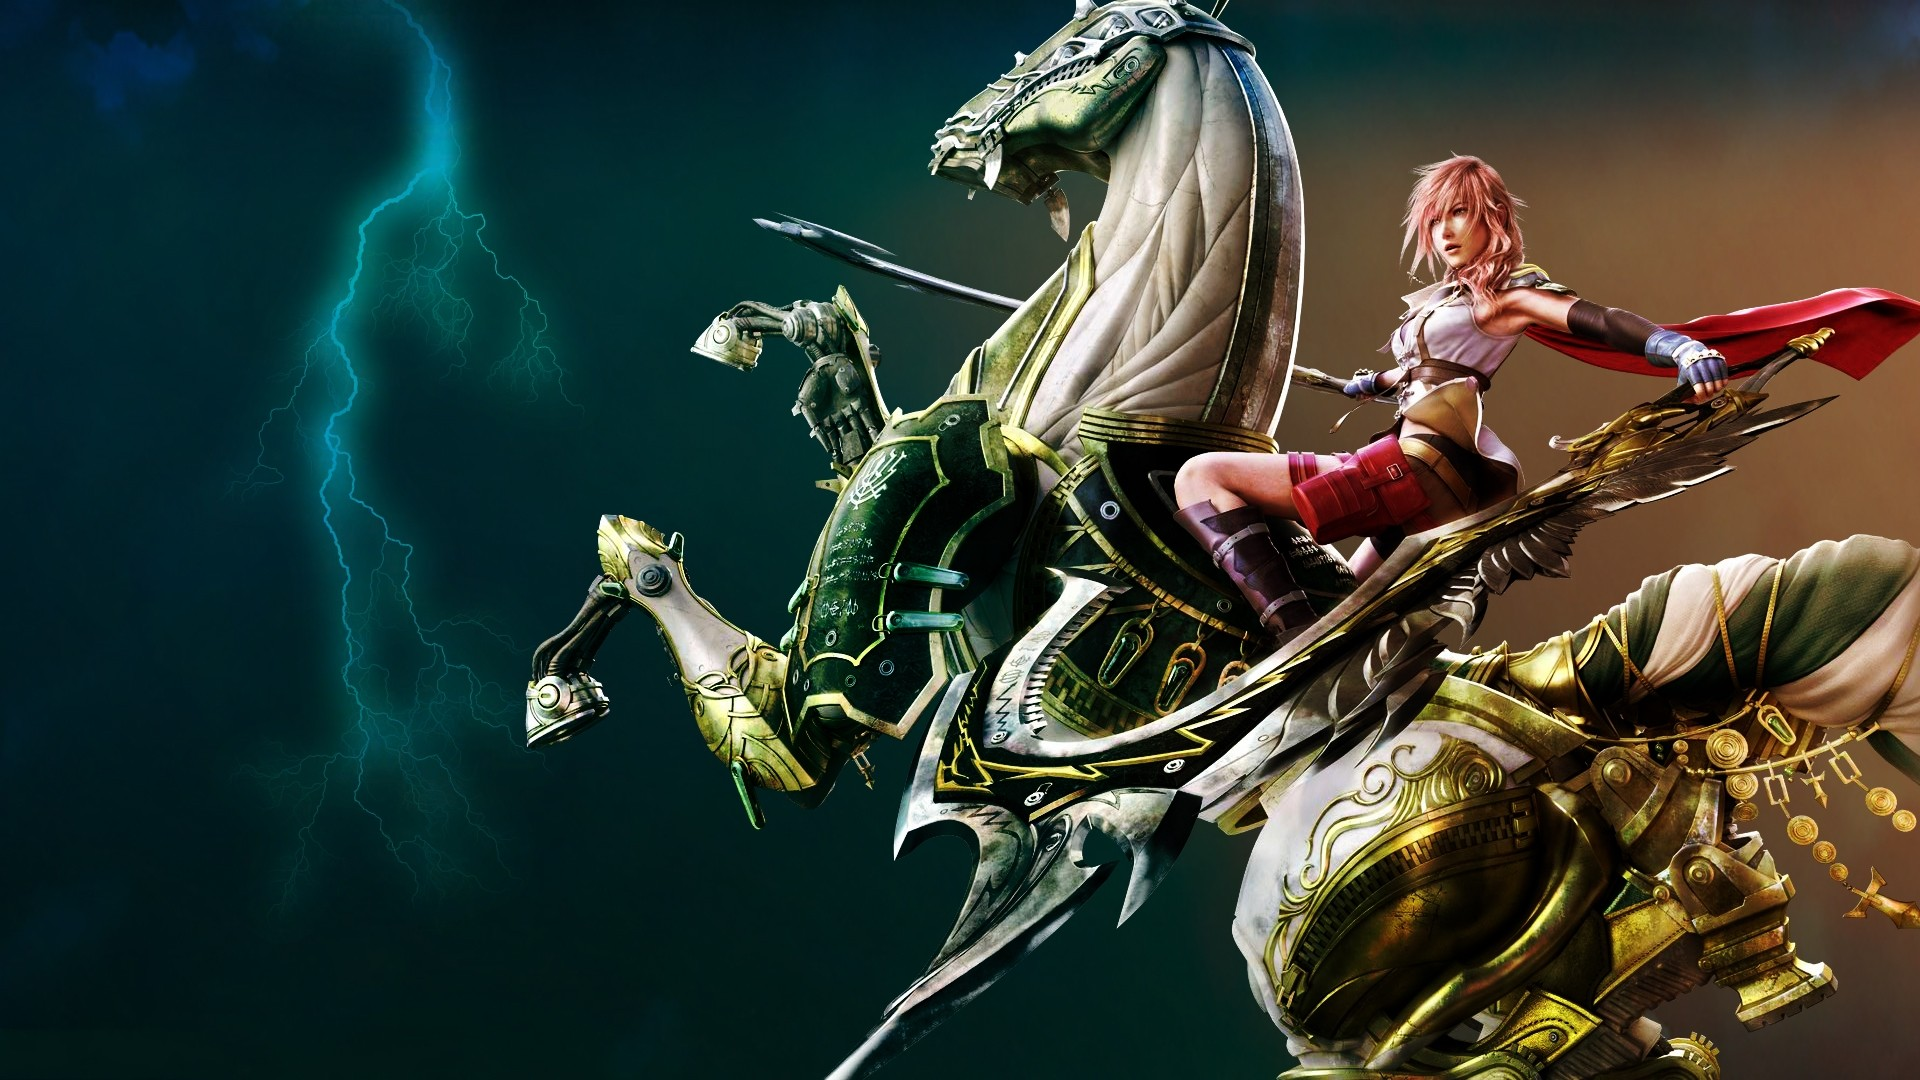 warrior woman and horse computer wallpapers desktop